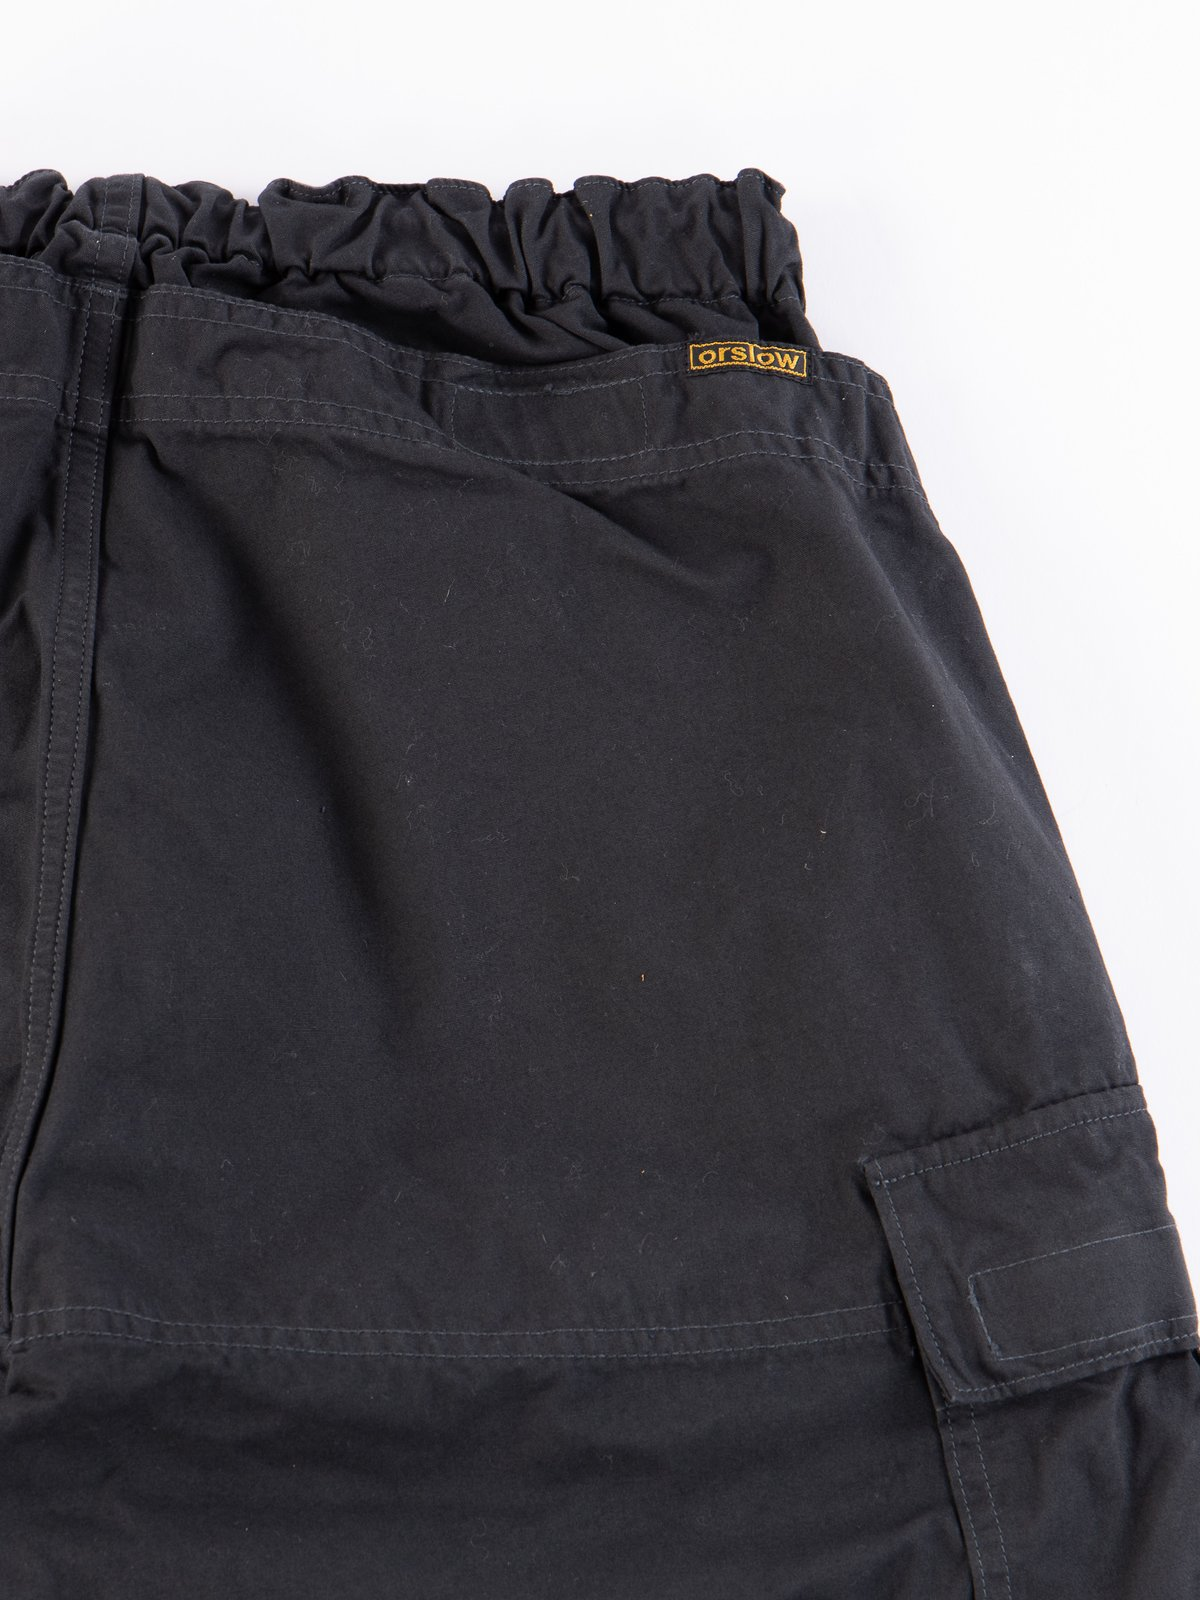 Grey Weather Cloth Easy Cargo Pant - Image 8